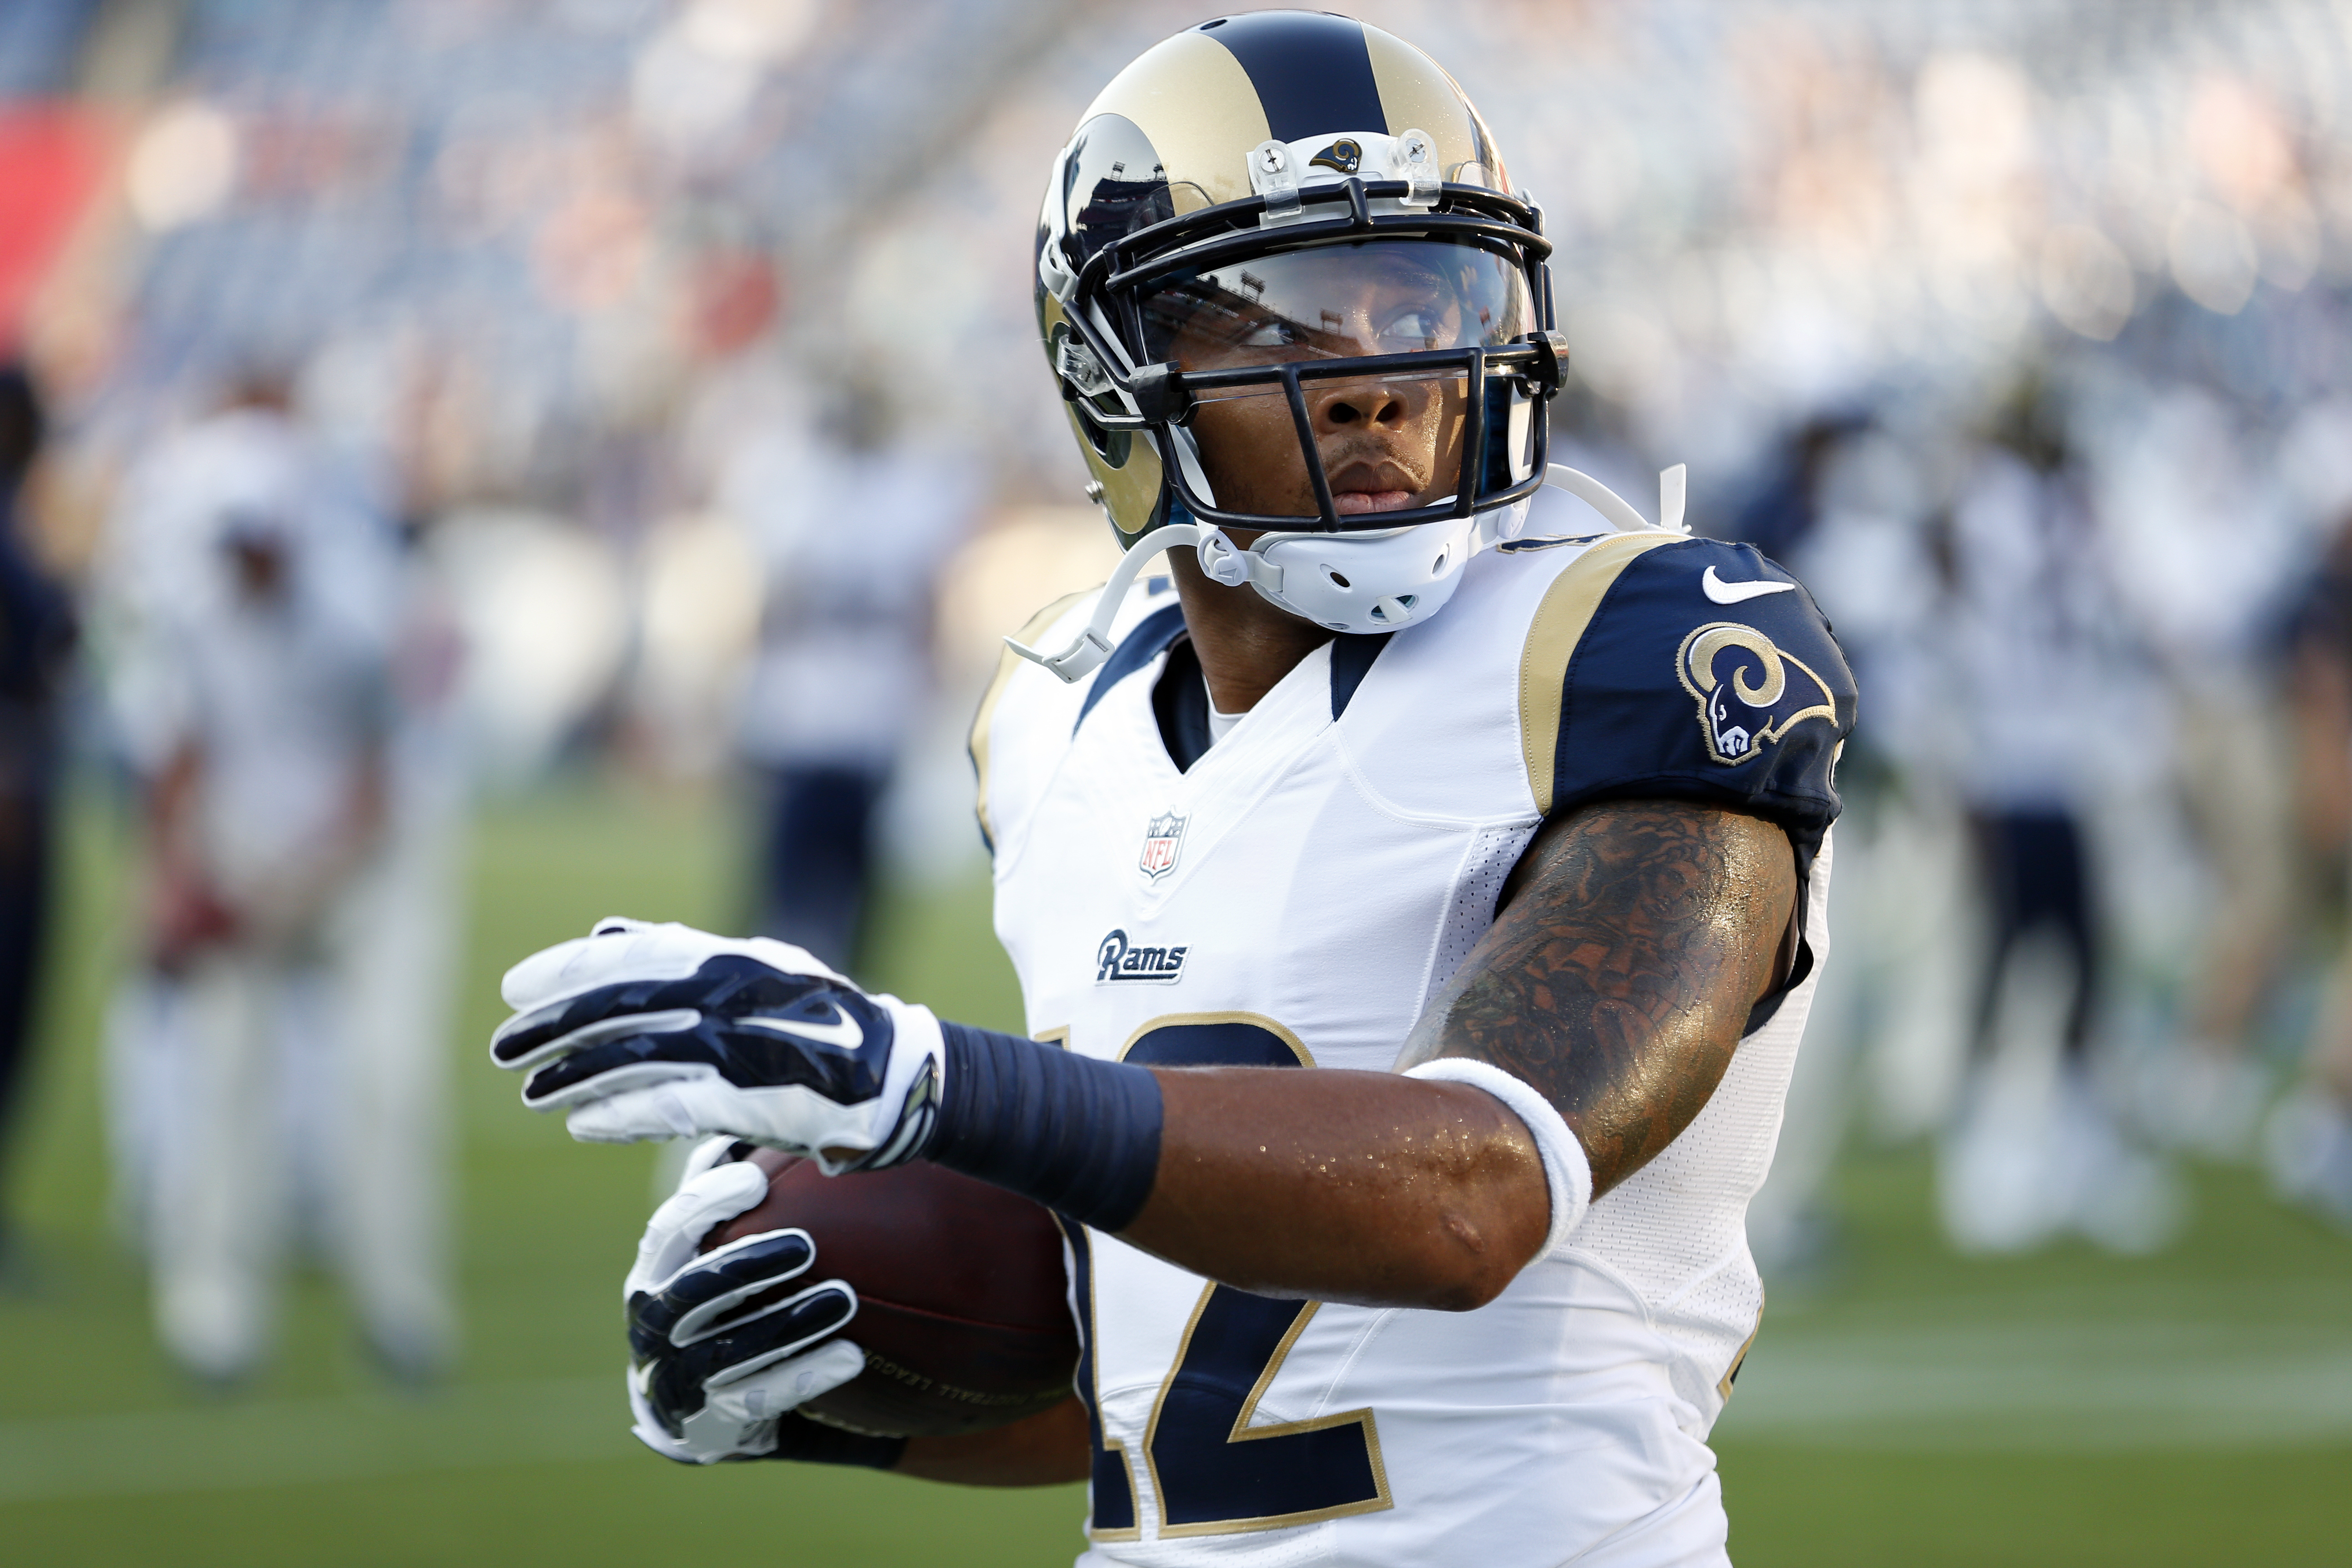 St. Louis Rams wide receiver Stedman Bailey warms up before a preseason NFL football game against the Tennessee Titans Sunday, Aug. 23, 2015, in Nashville, Tenn. (AP Photo/Weston Kenney)